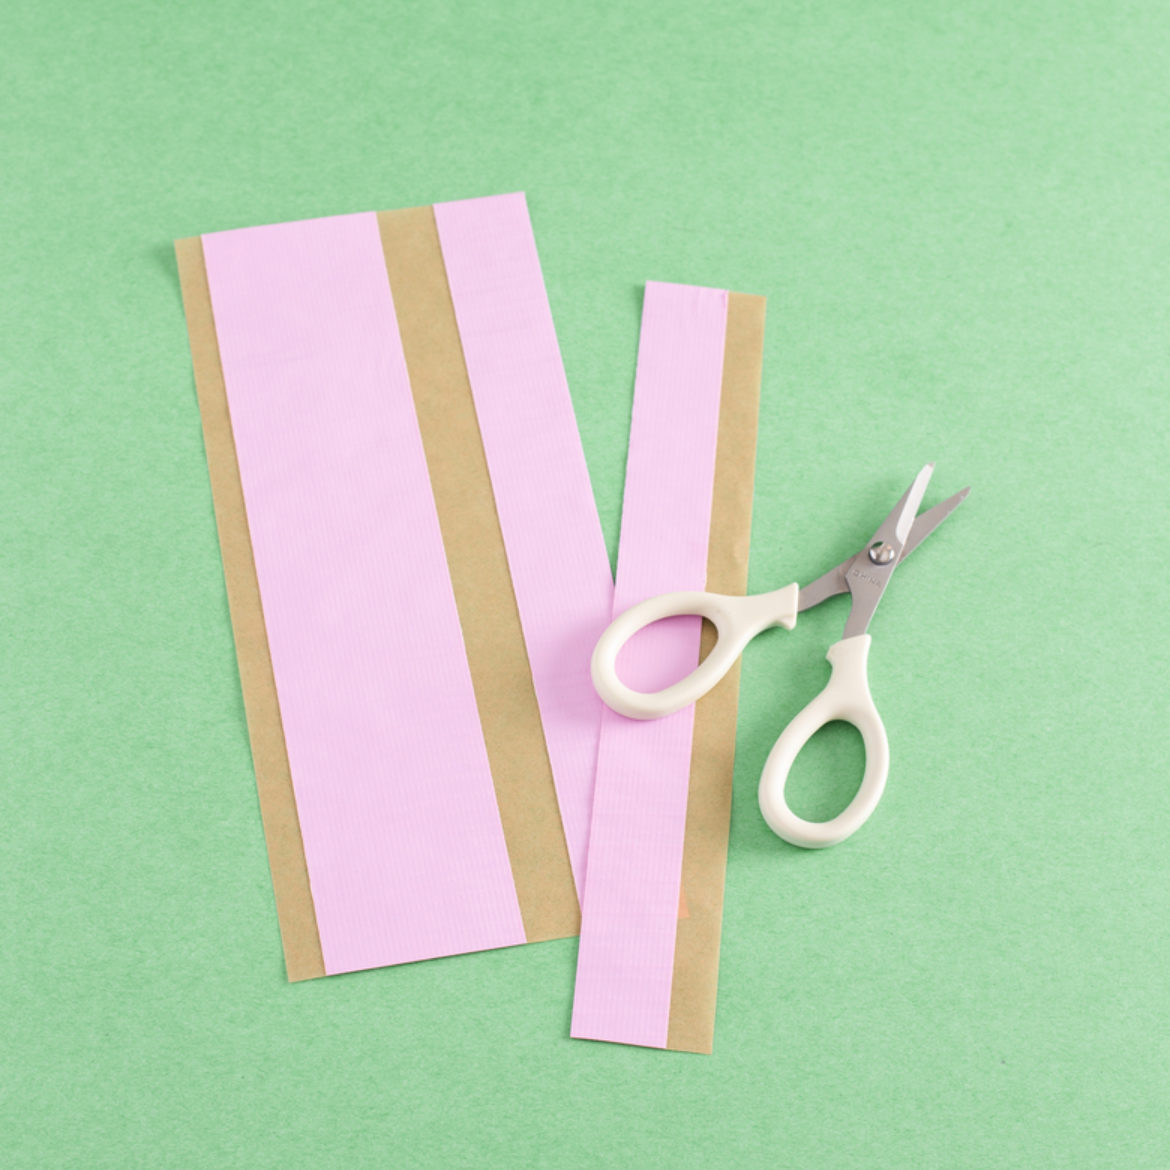 Strips of pink duct tape with scissors